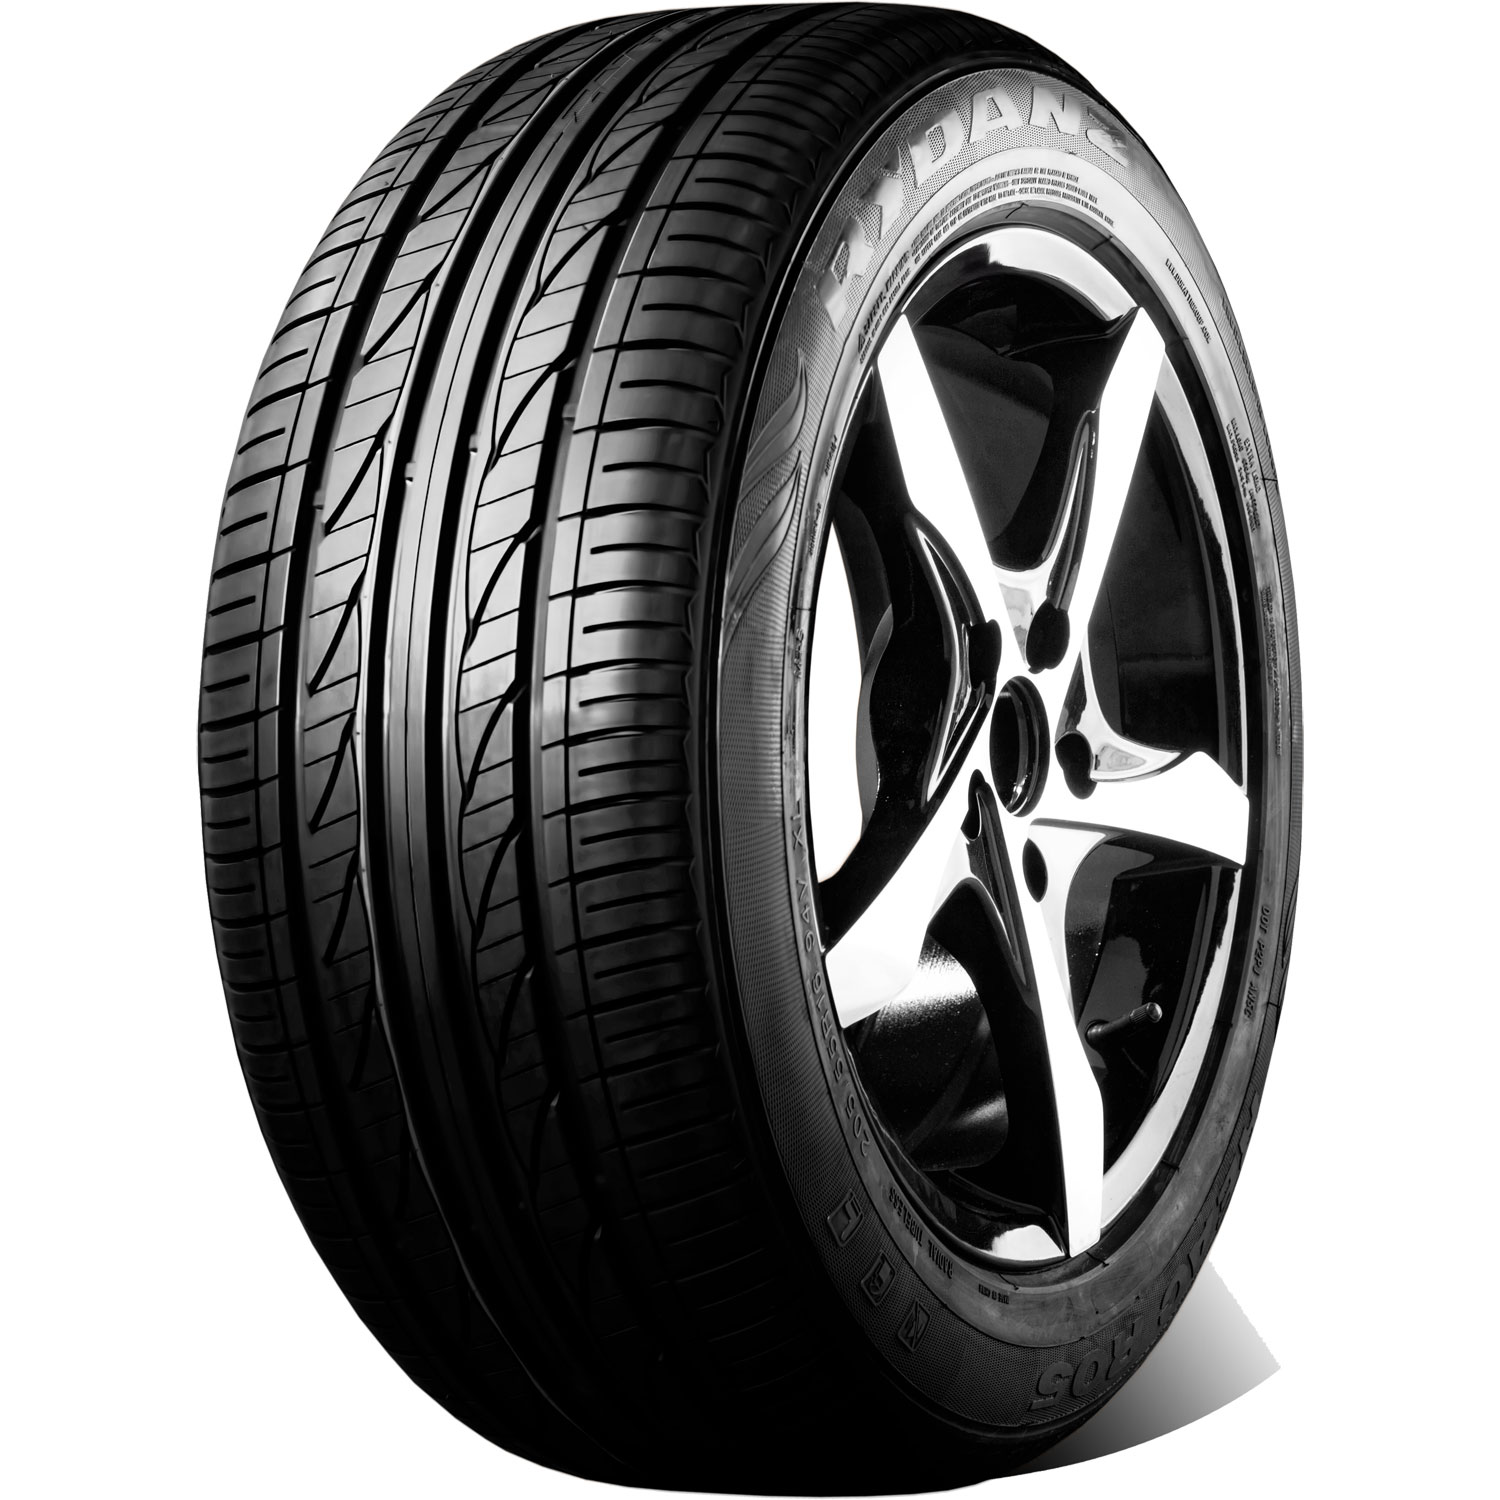 Rydanz Tires Reac R05 Passenger All Season Tire - 165/50R15 72V